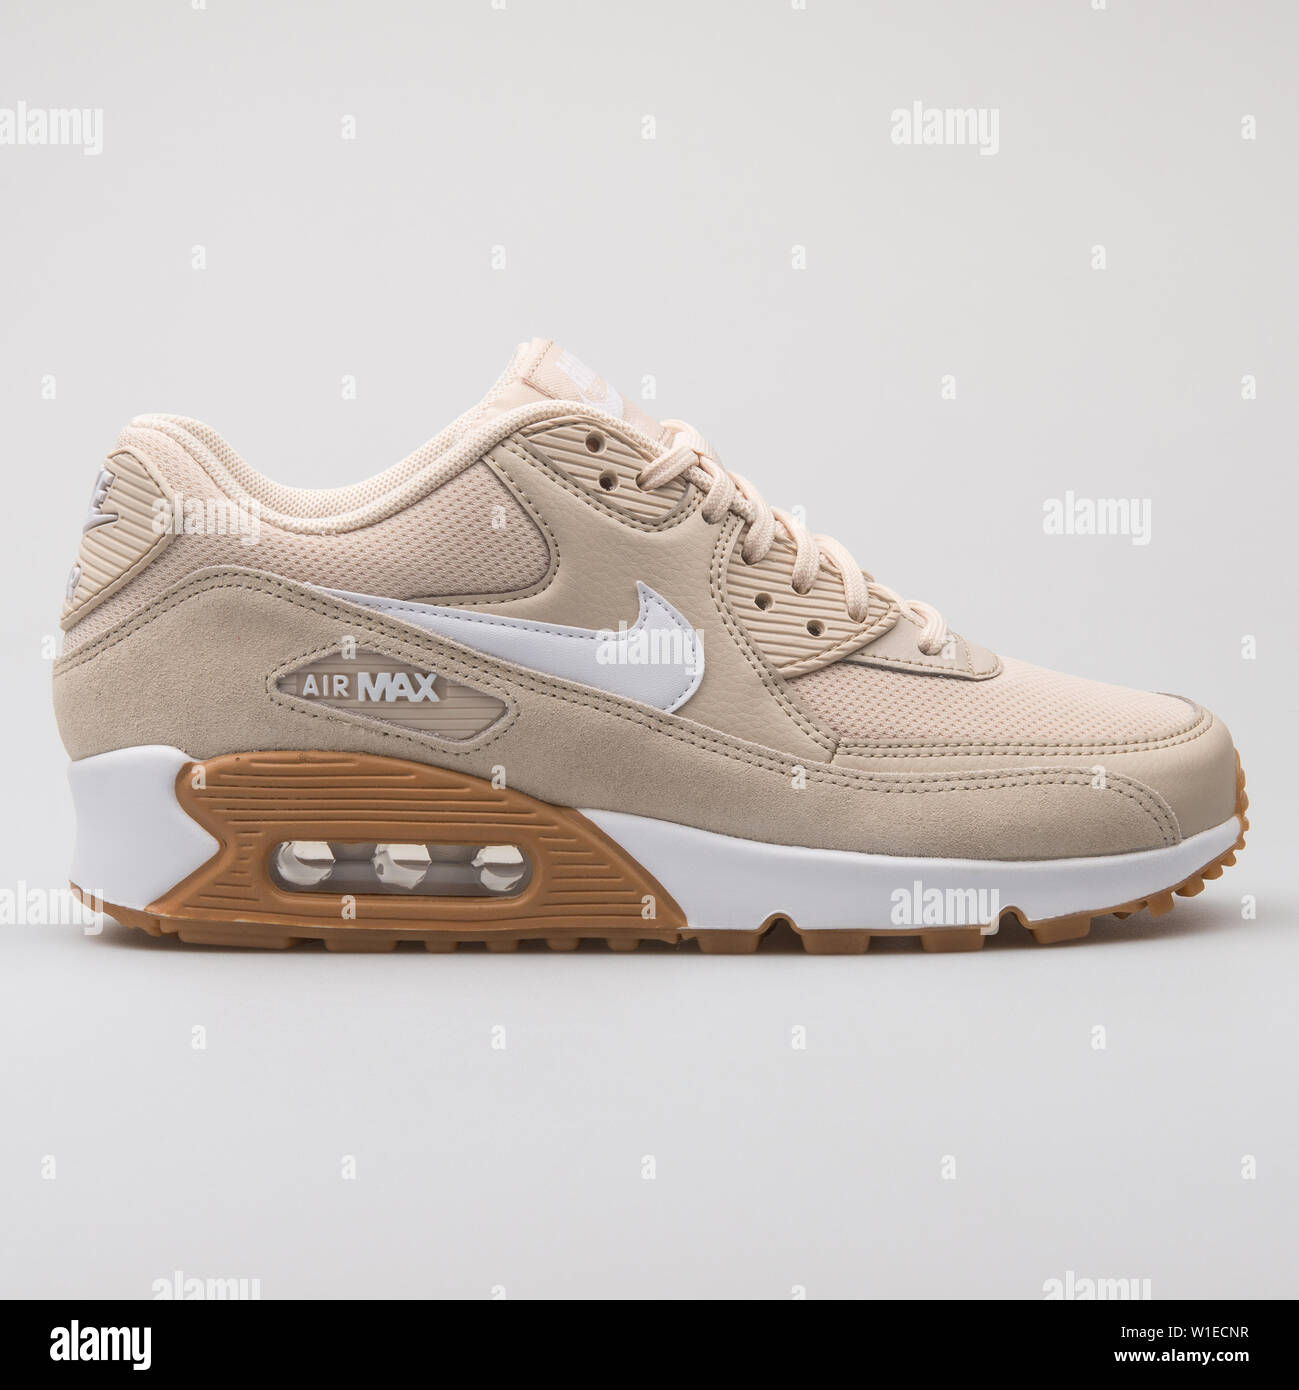 info for 9d6d7 0ee82 VIENNA, AUSTRIA - AUGUST 7, 2017: Nike Air Max 90 beige and ...